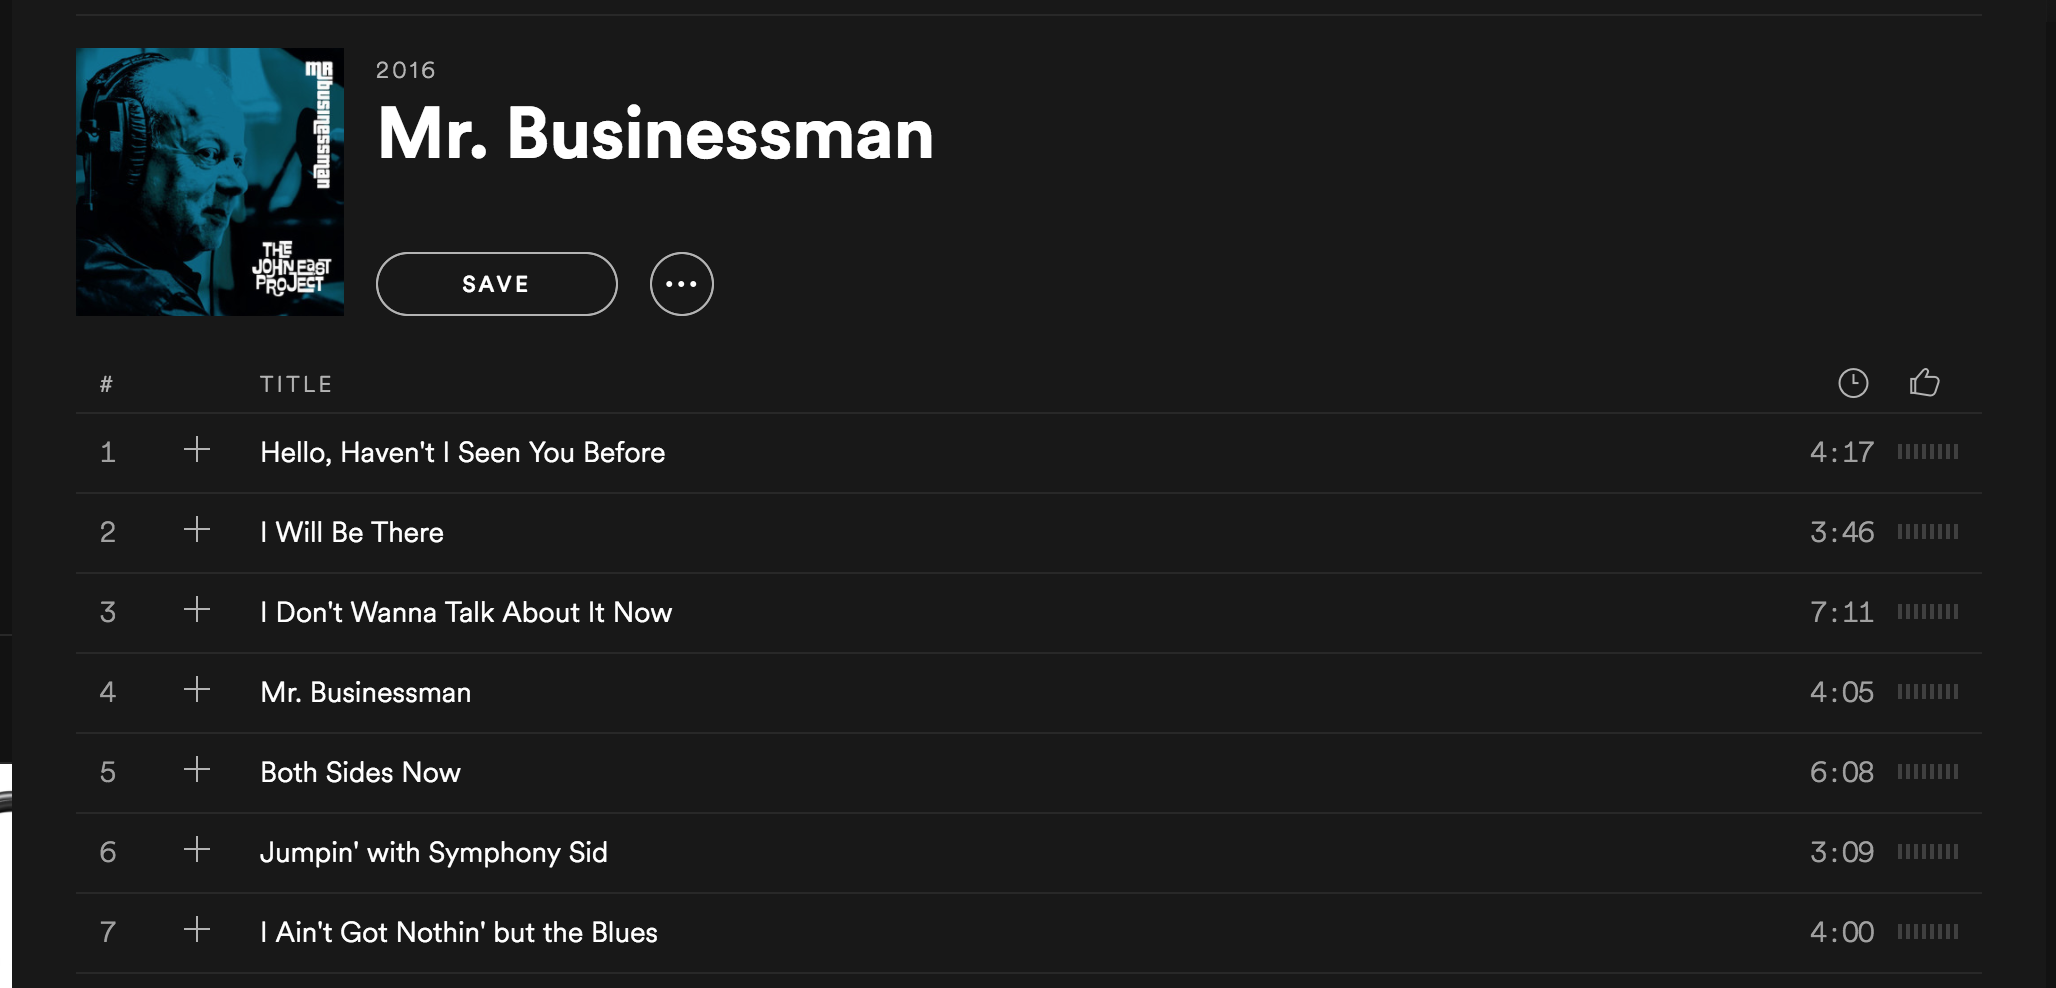 Mr Businessman (album on Spotify)